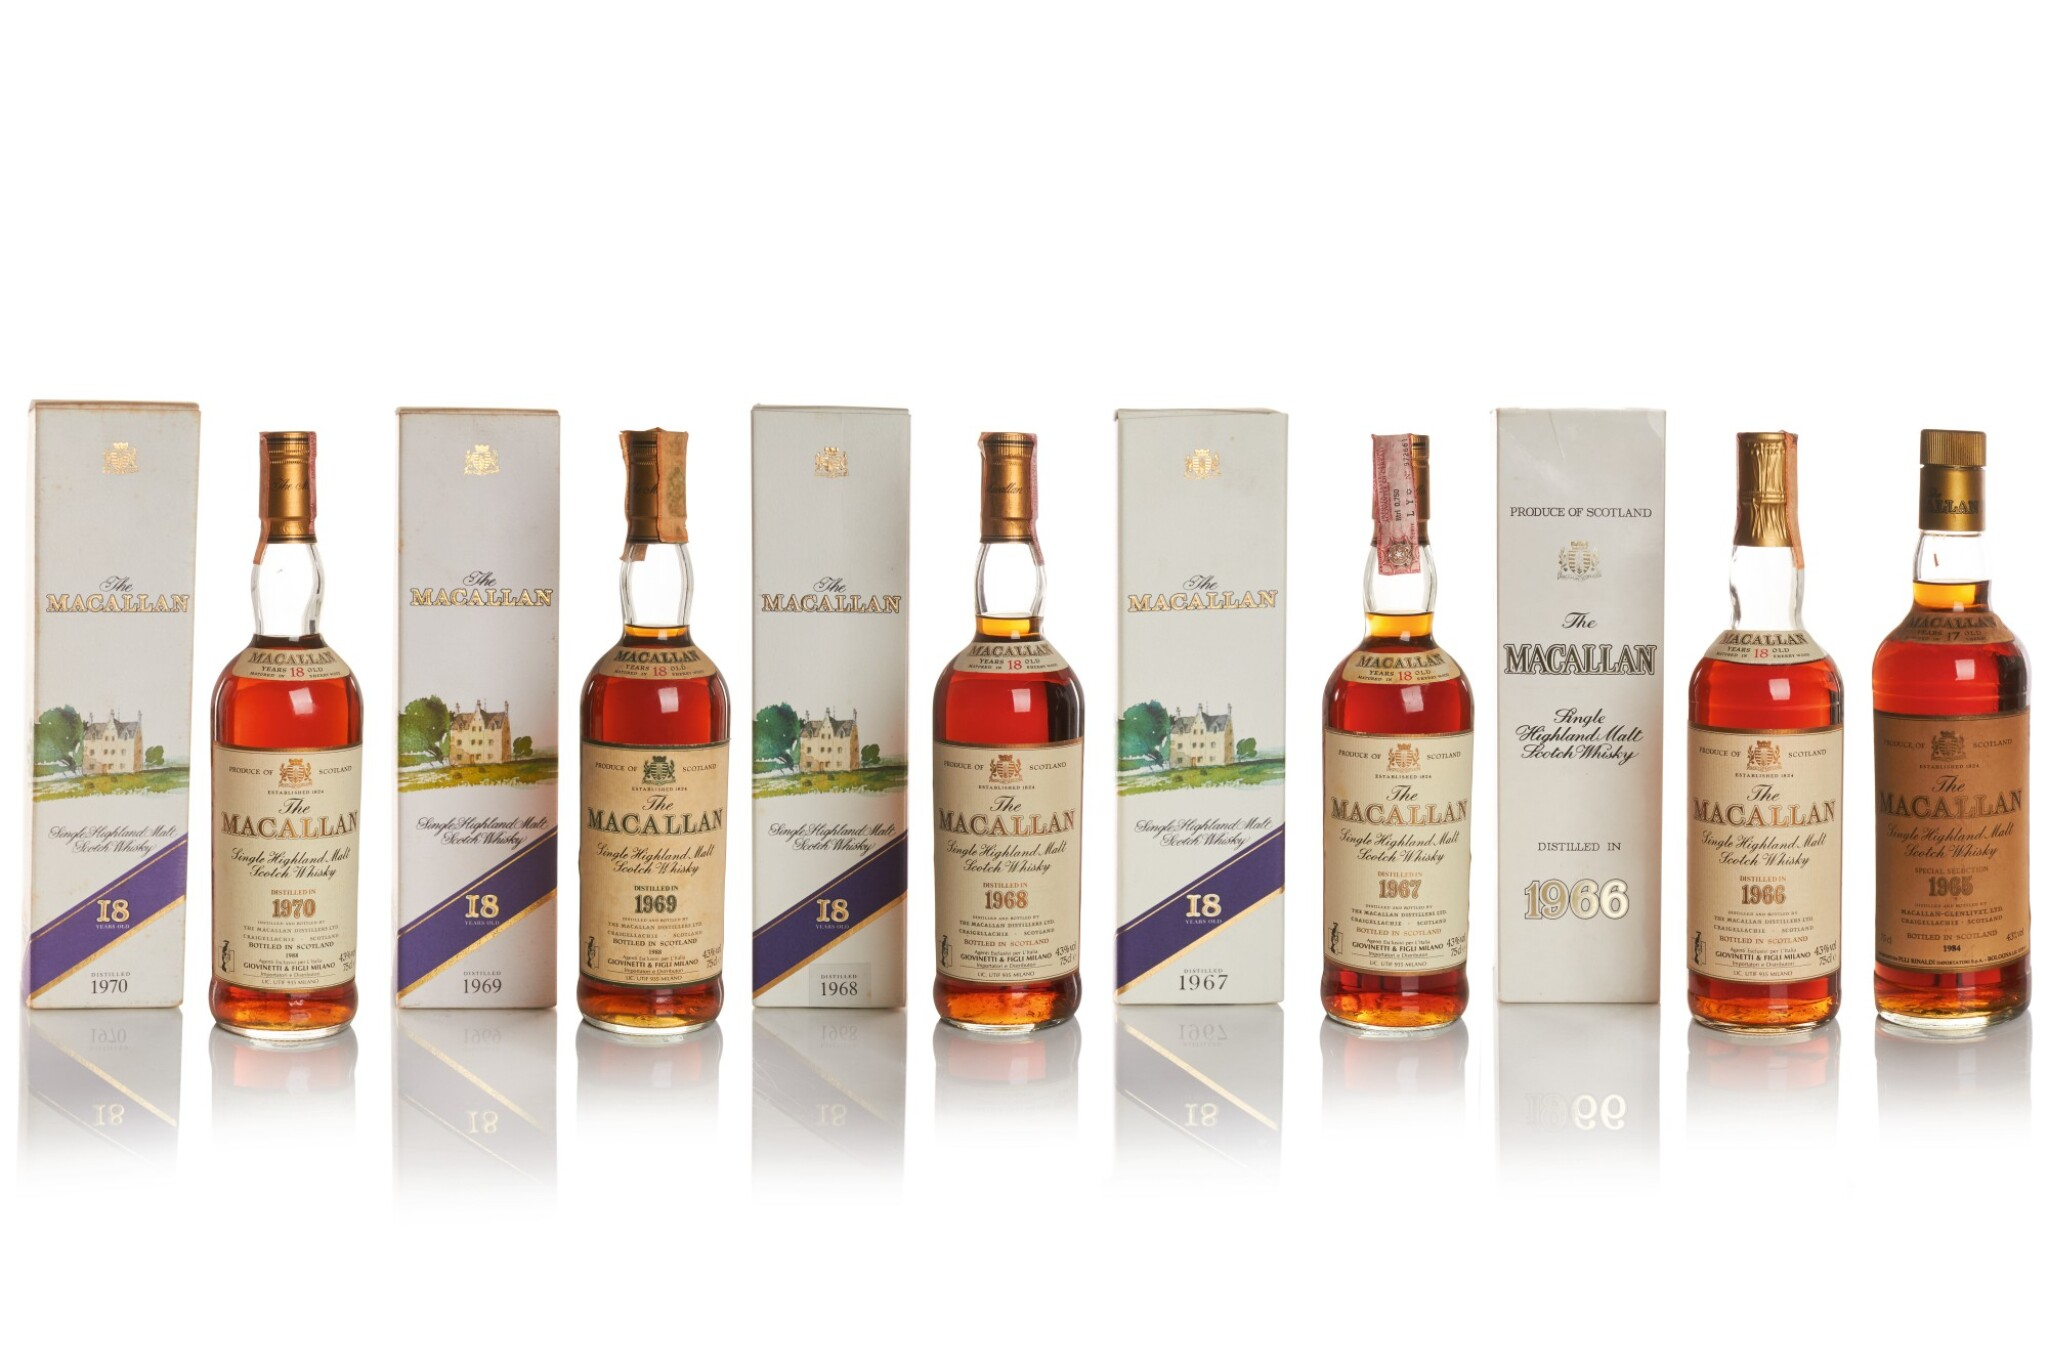 THE MACALLAN 18 YEAR OLD 43.0 ABV 1969